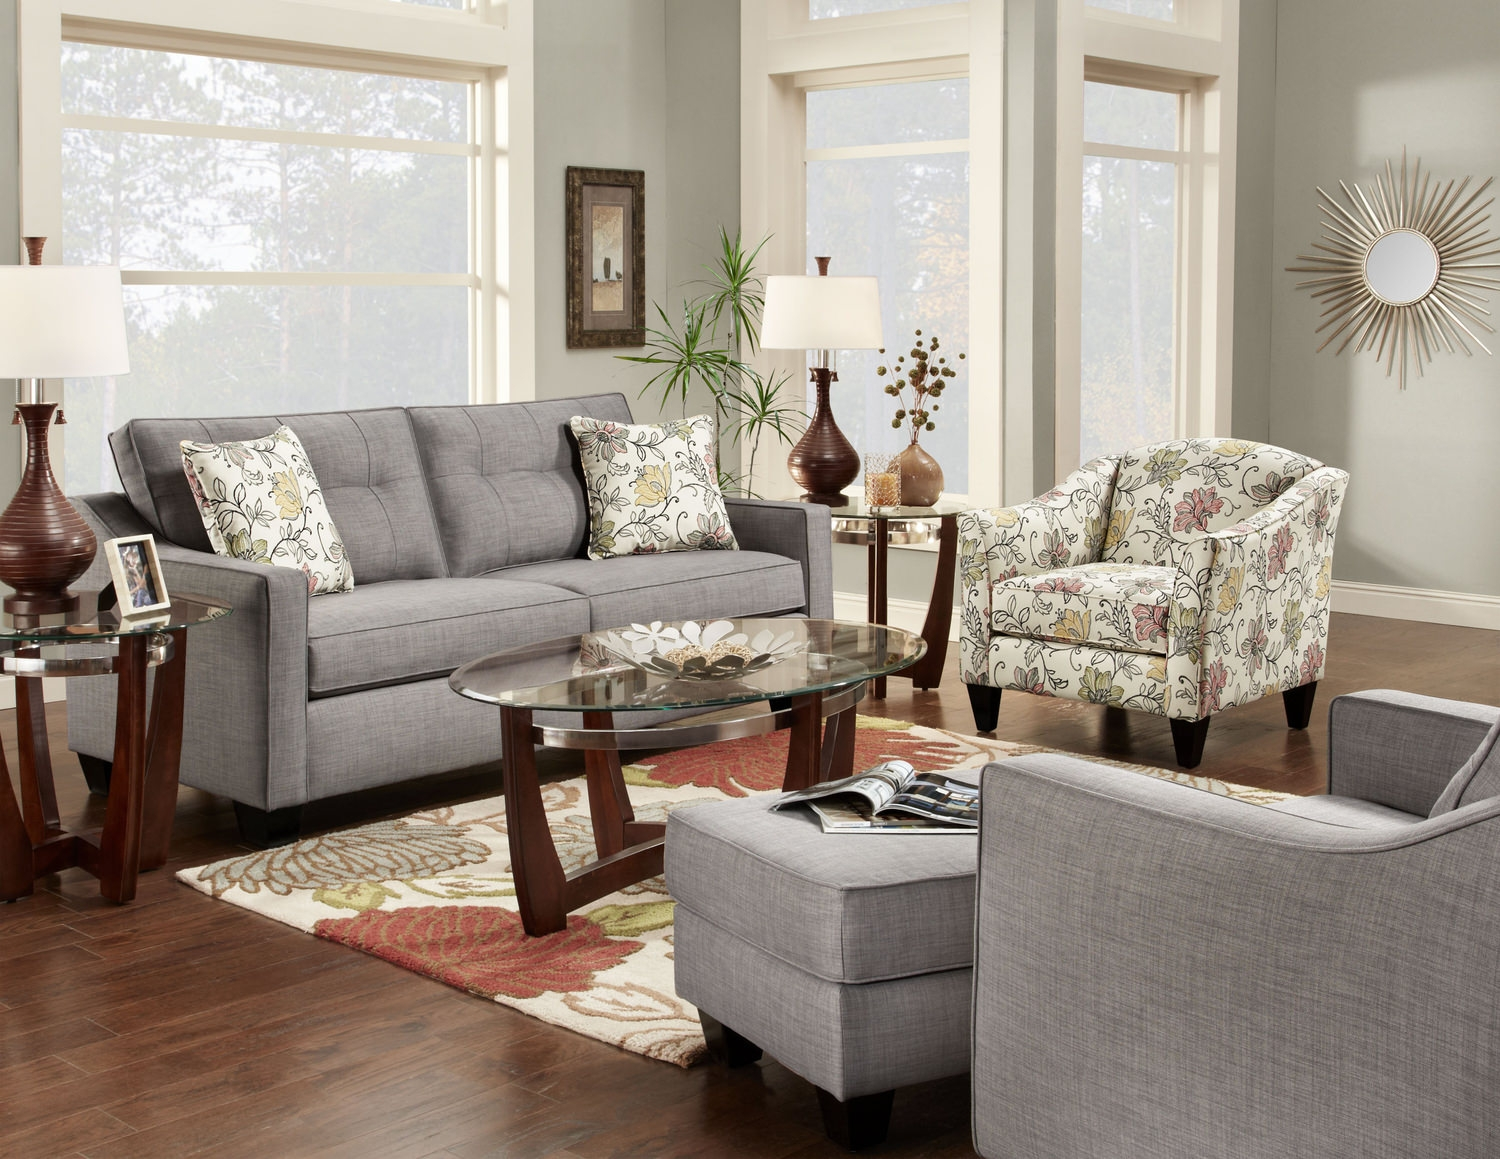 Sofa And Accent Chair Set Endearingenchanting Kavandeco Intended For Sofa And Accent Chair Set (Image 15 of 15)